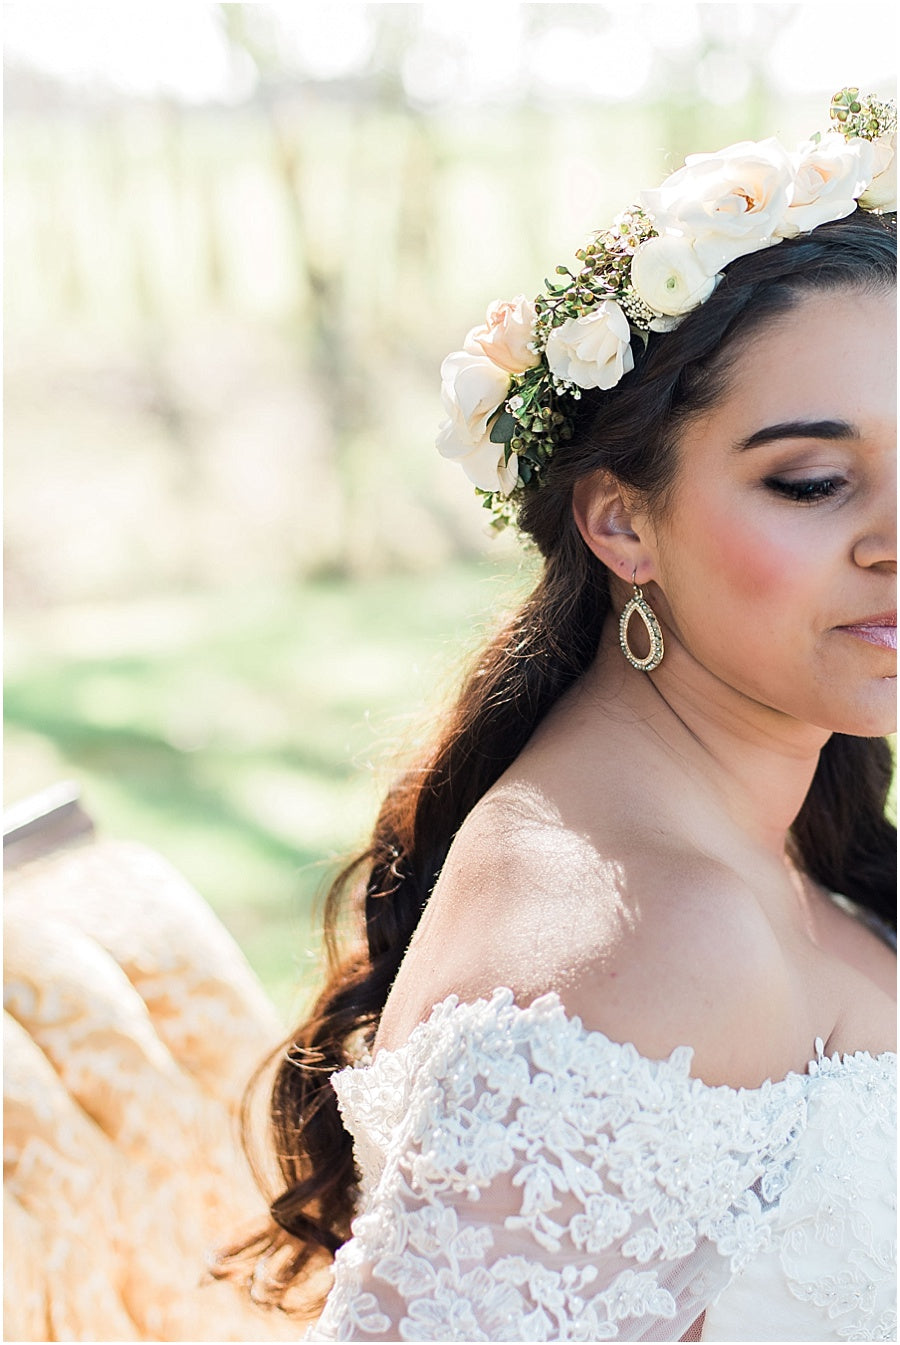 leah adkins photography // little miss lovely floral design // ivory and blush flower crown for bride